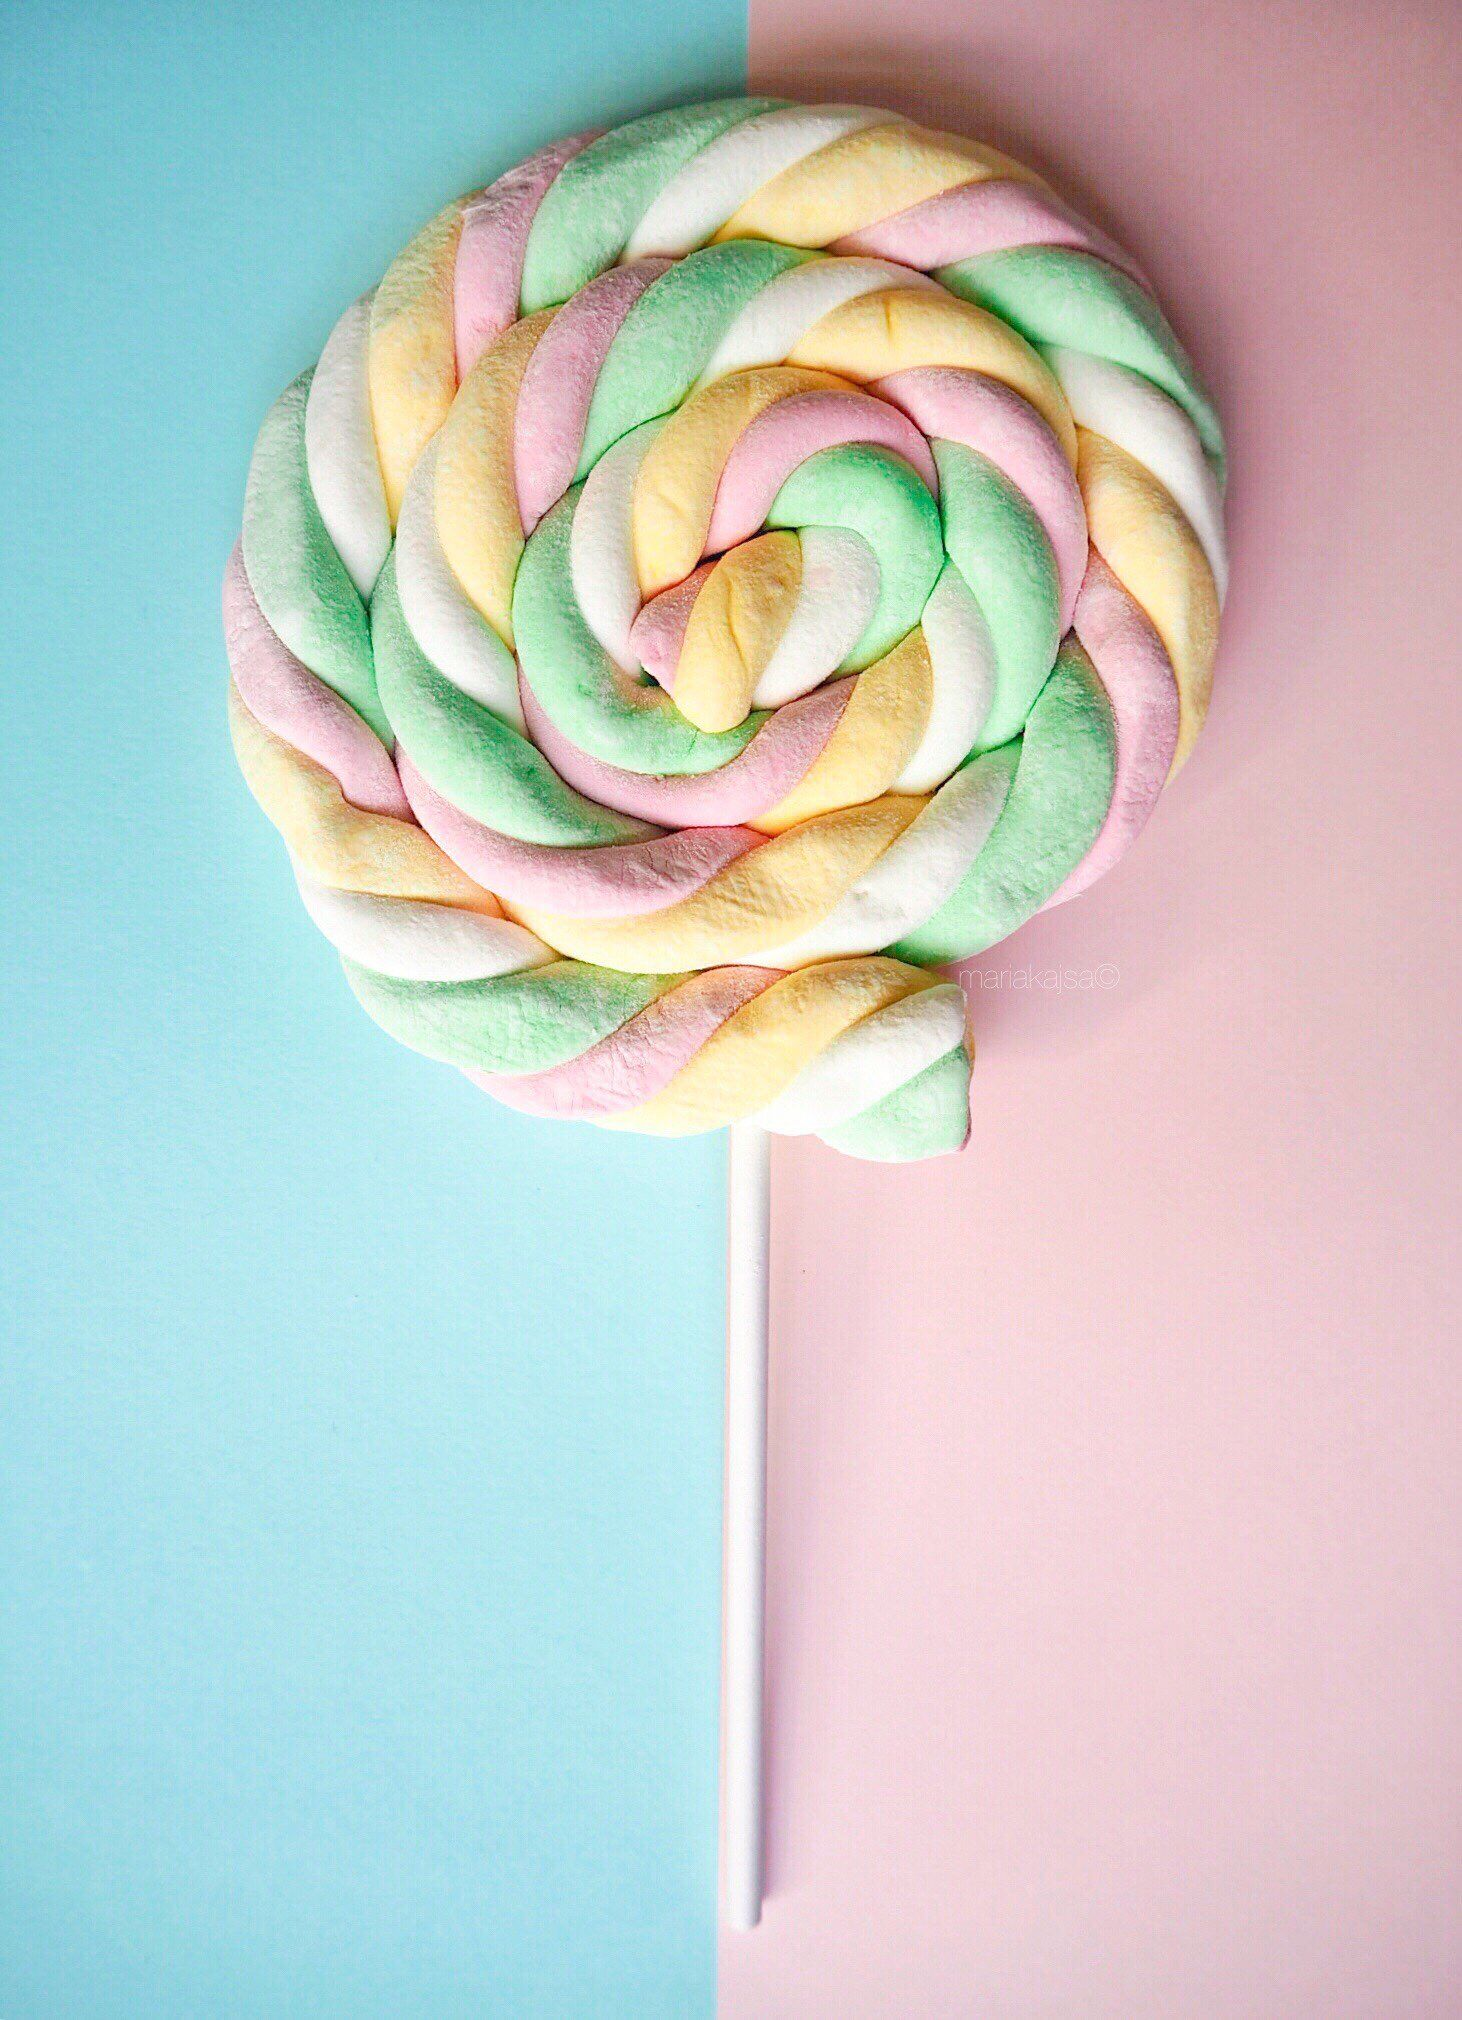 Iphone And Android Wallpapers Pastel Candy Lollipop Wallpaper For Iphone And Android Beingmariakajsa On Ins Pastel Candy Candy Photography Android Wallpaper